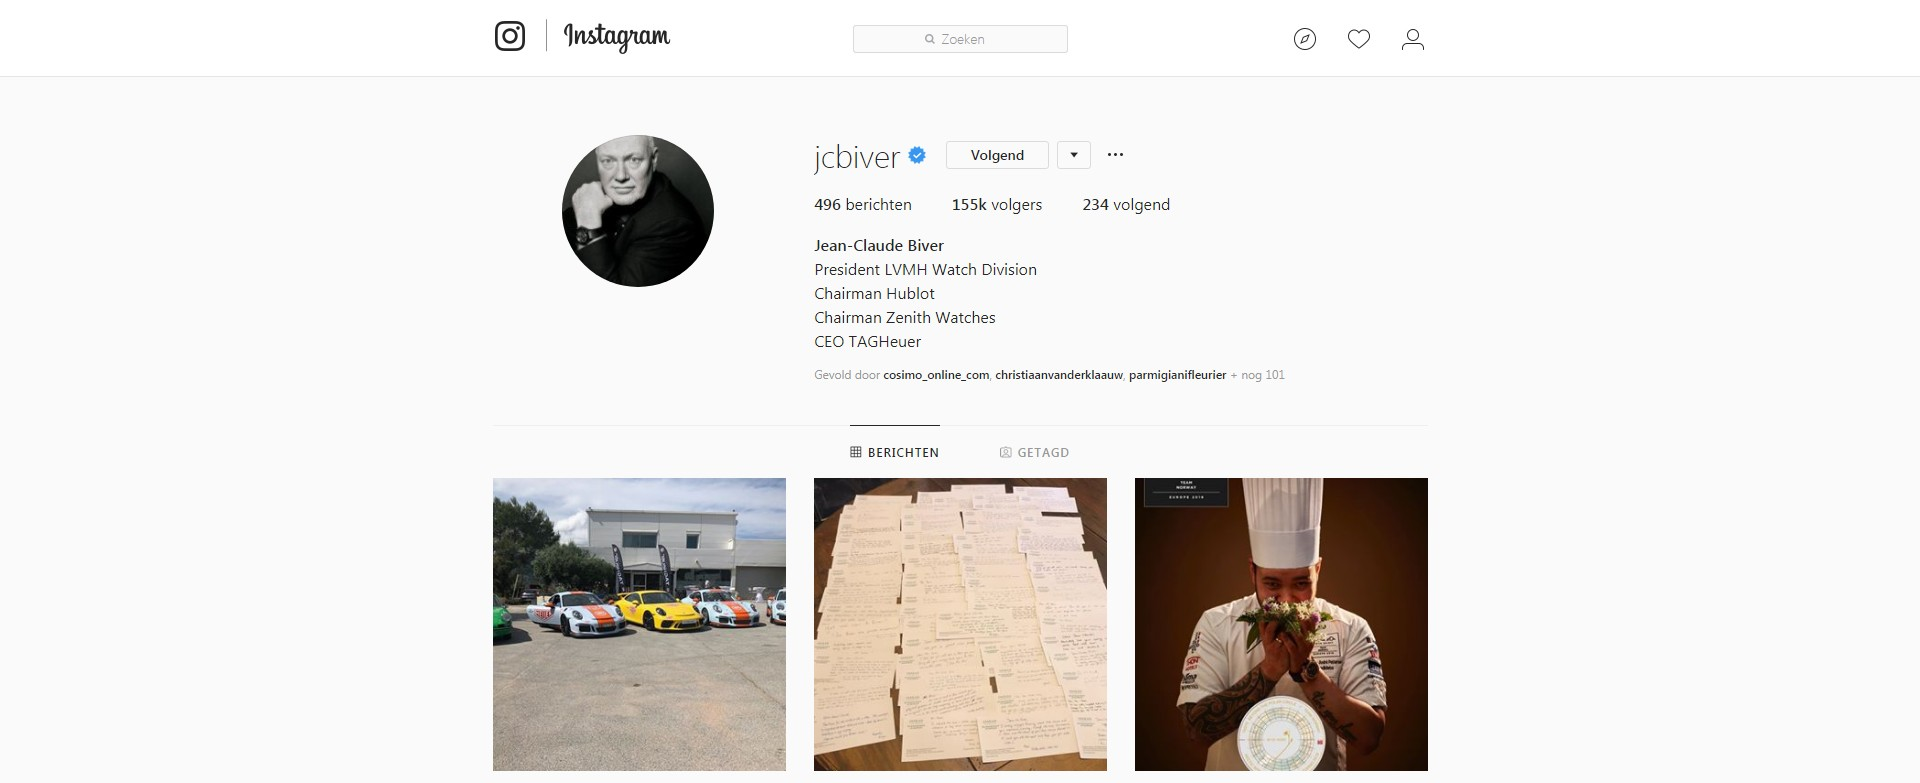 Instagram swiss watch brand CEO The Ace List - who to follow